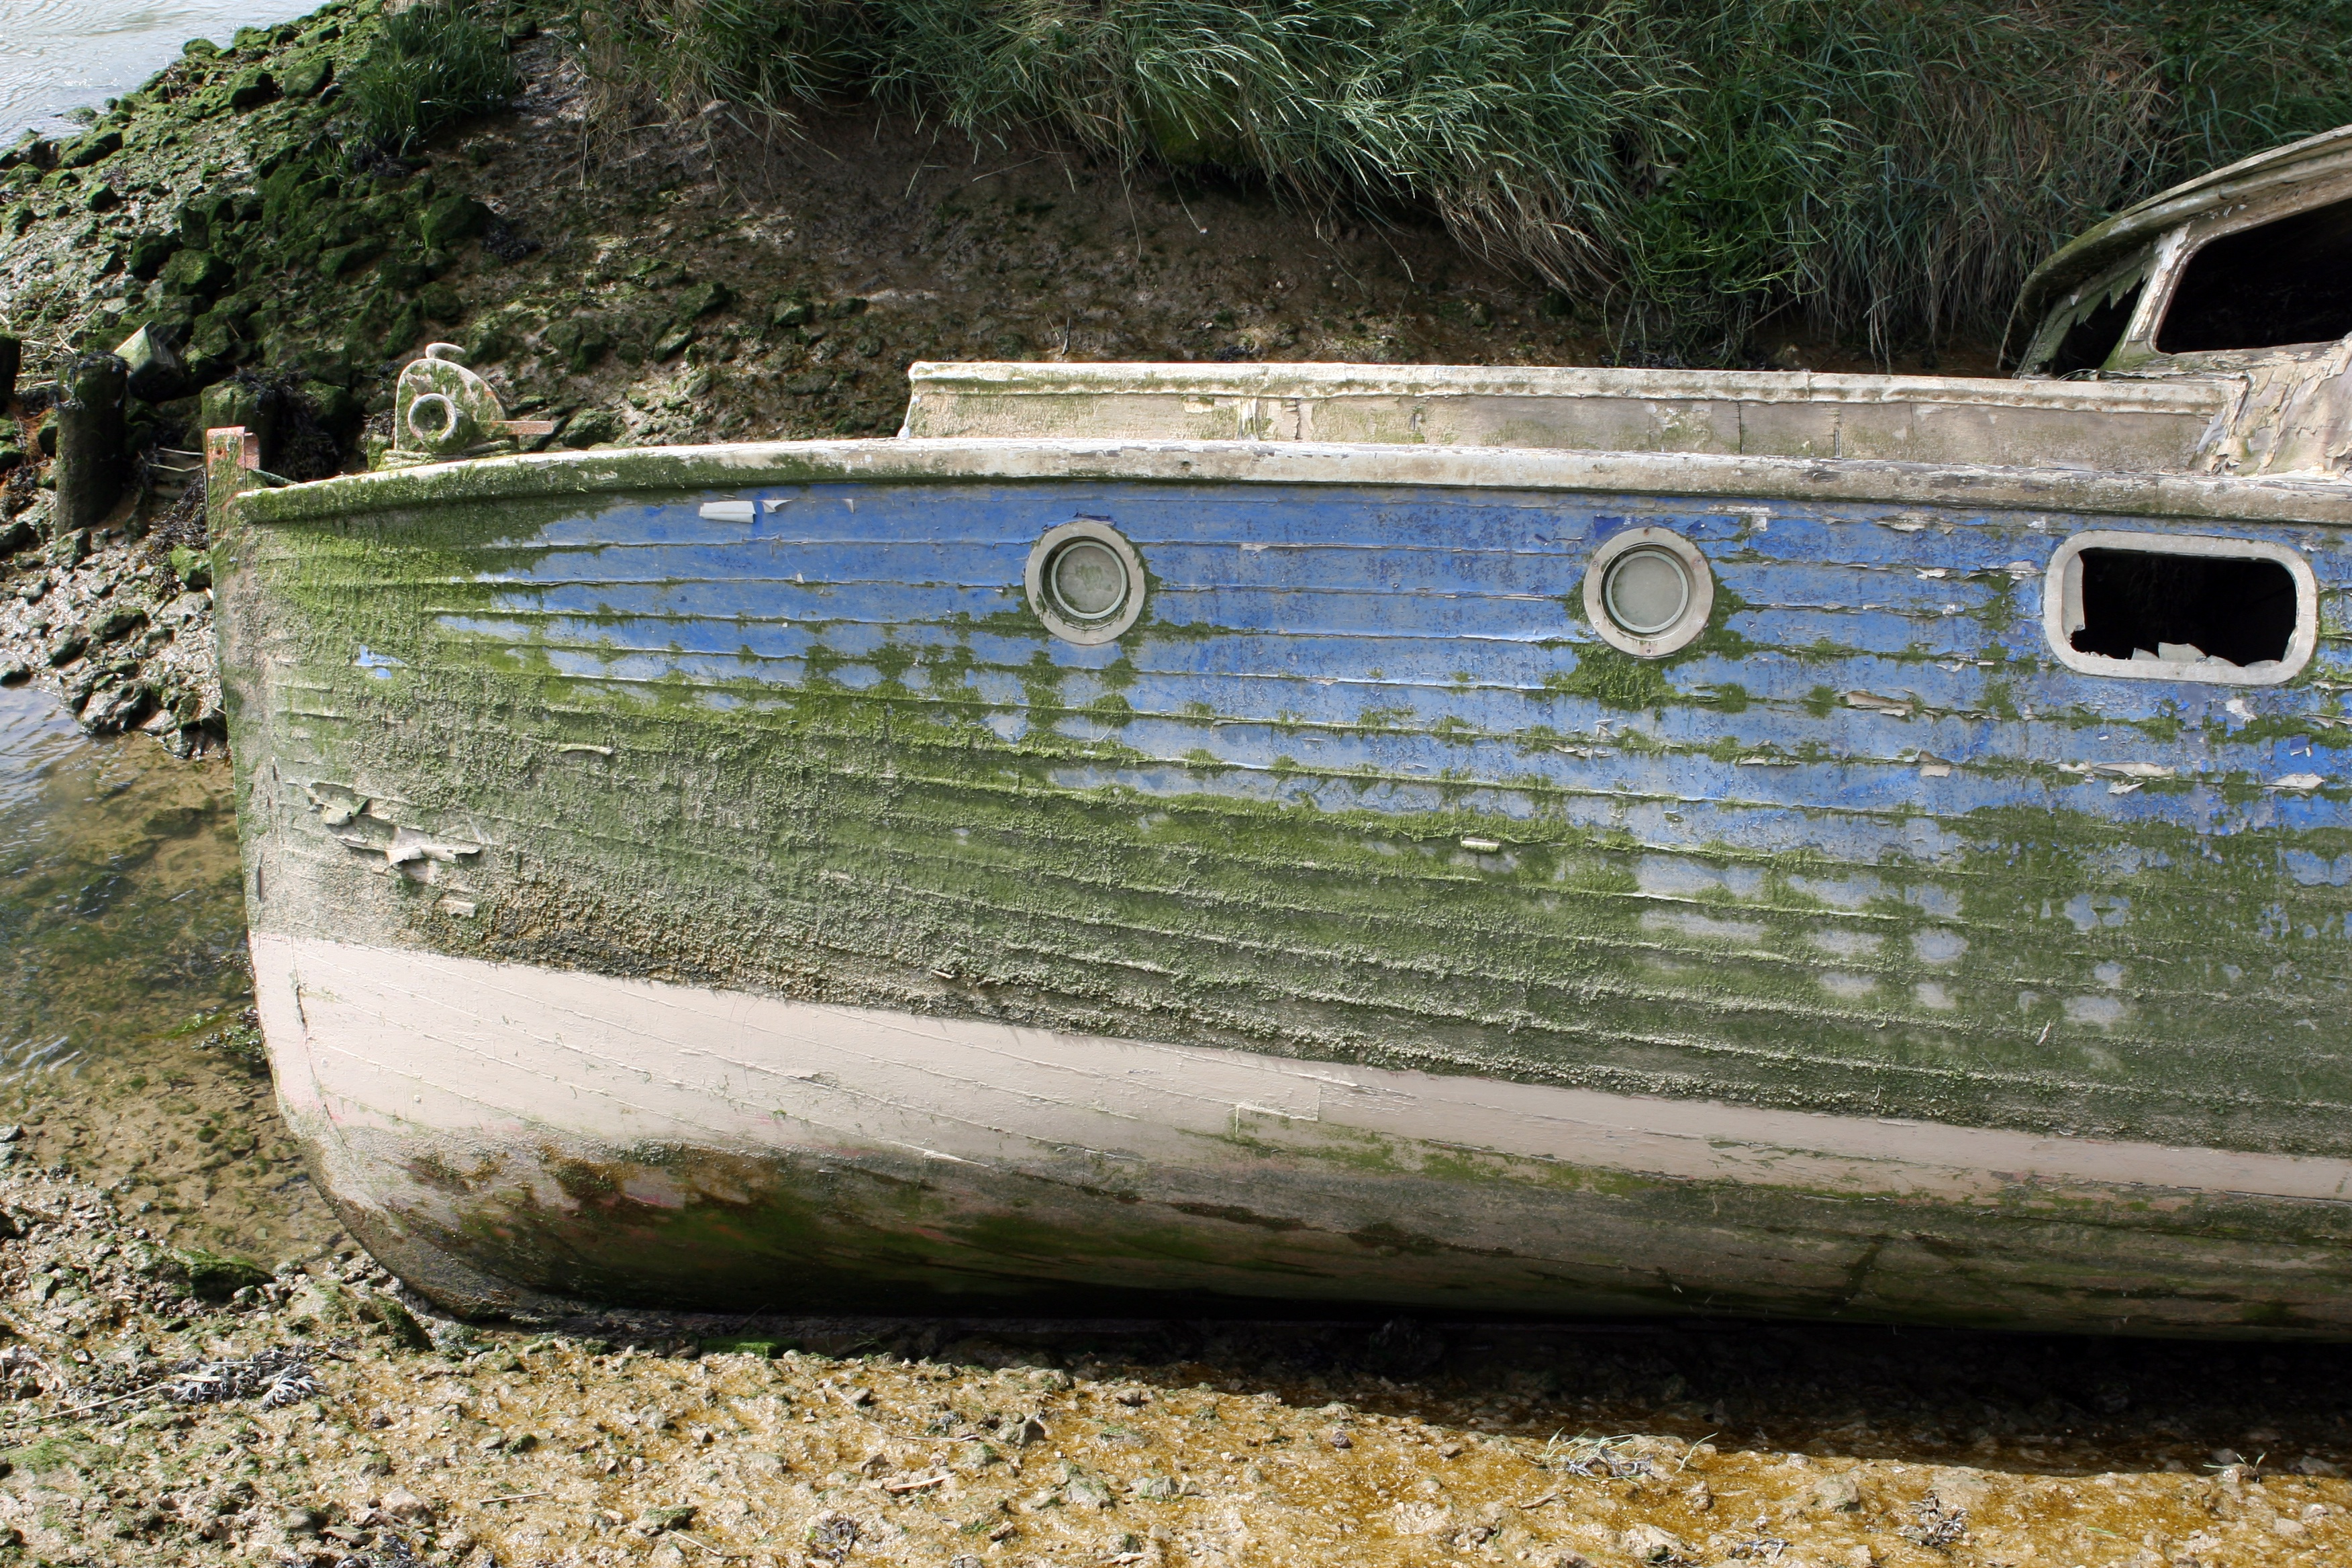 Boat, Old, Ship, Wood, Wooden, HQ Photo